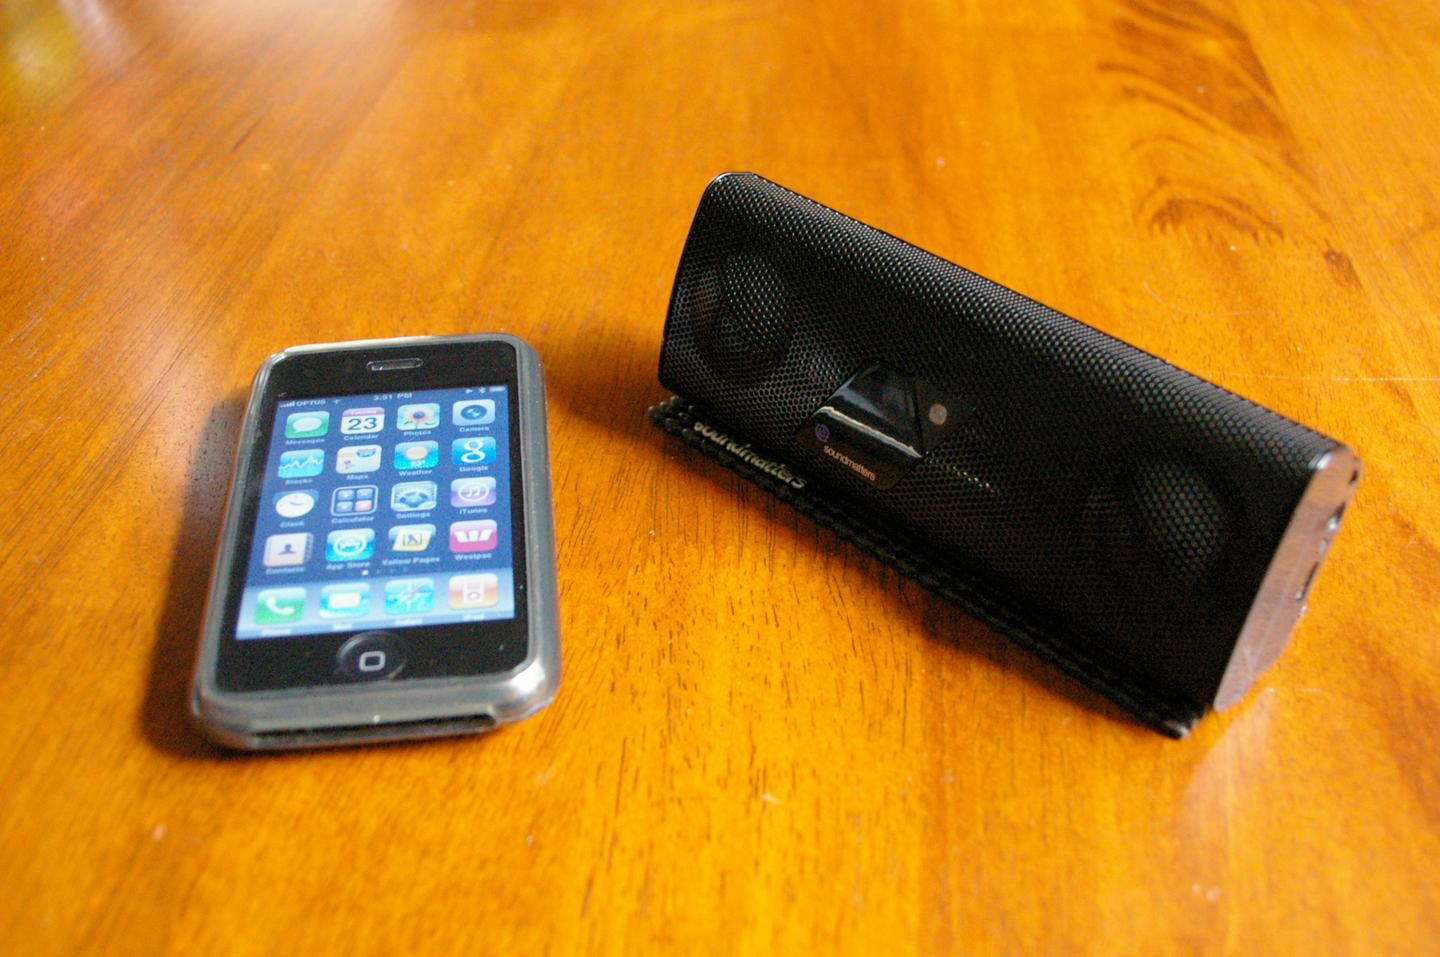 The foxL v2 - great wireless sound for your iPhone, iPod or other devices